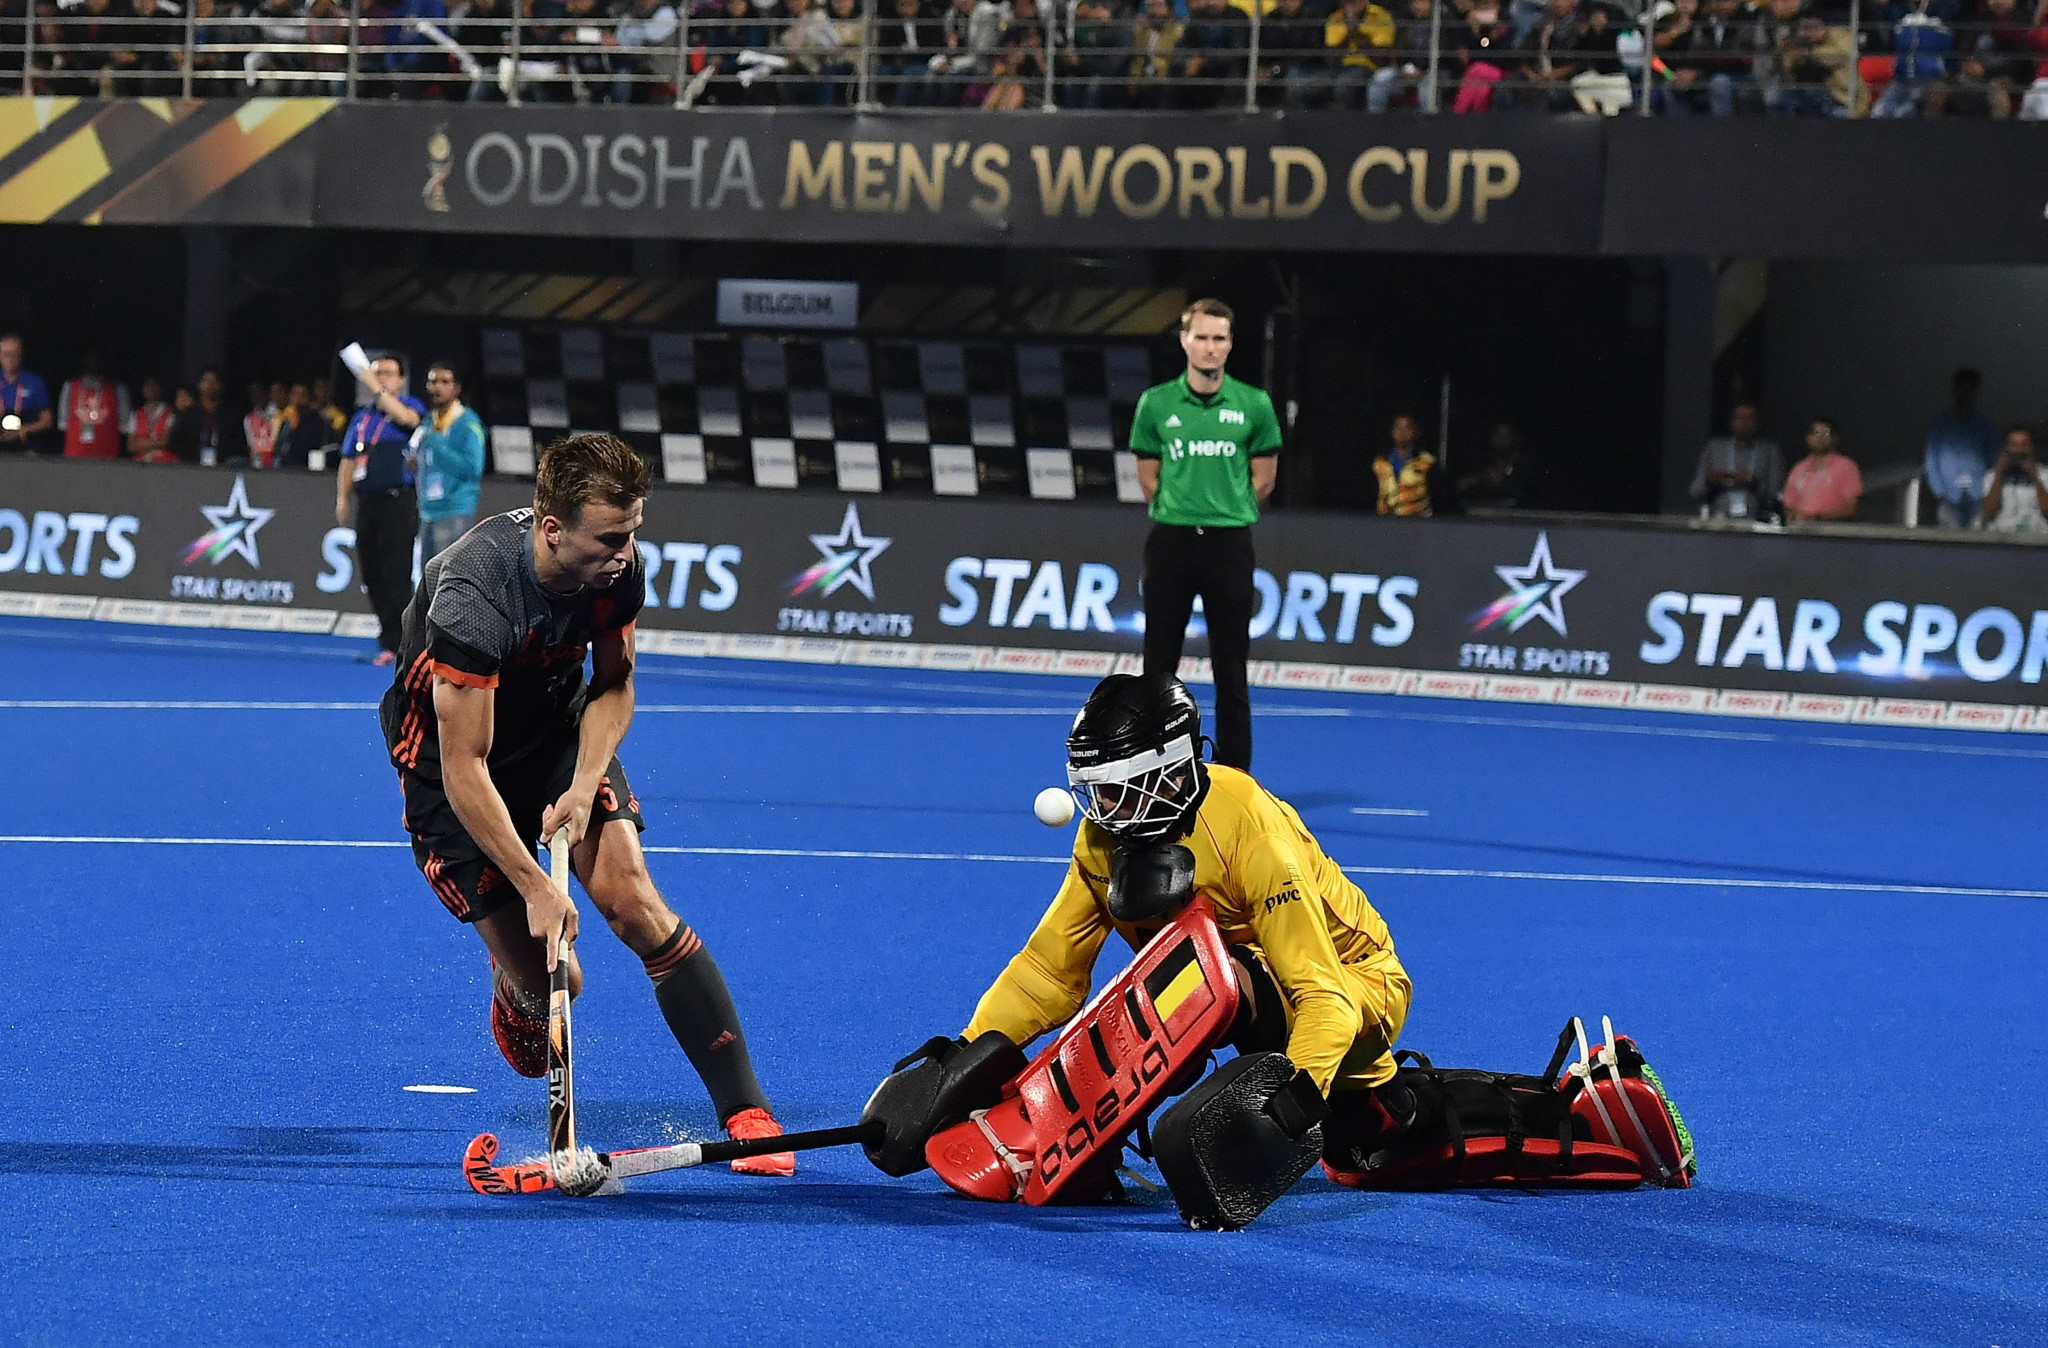 All FIH matches this year will be available on the platform, everywhere a broadcaster is not already showing the match ©Getty Images